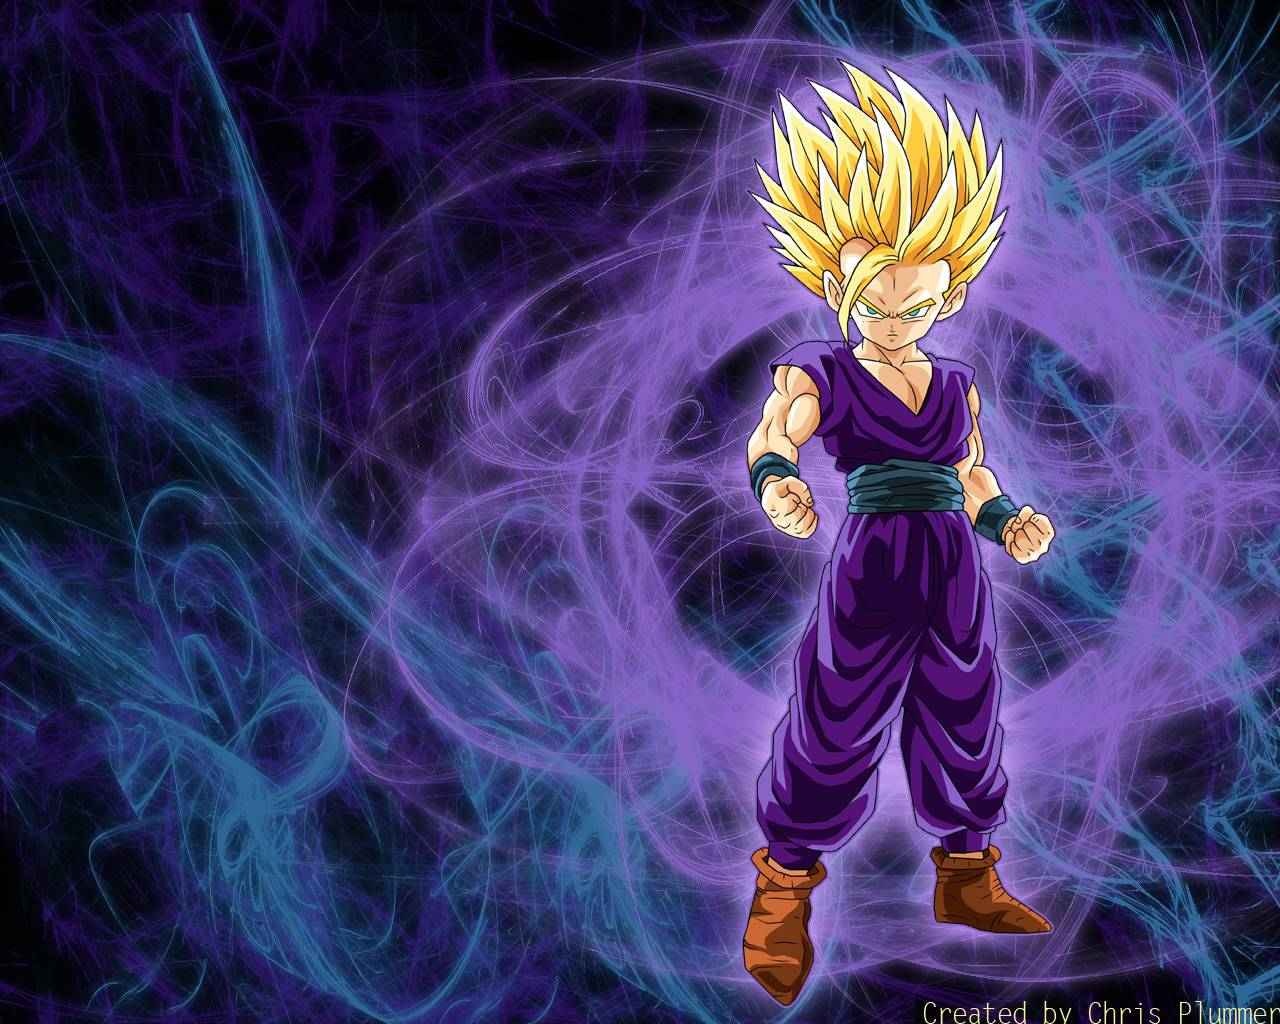 76 Ssj2 Gohan Wallpaper On Wallpapersafari